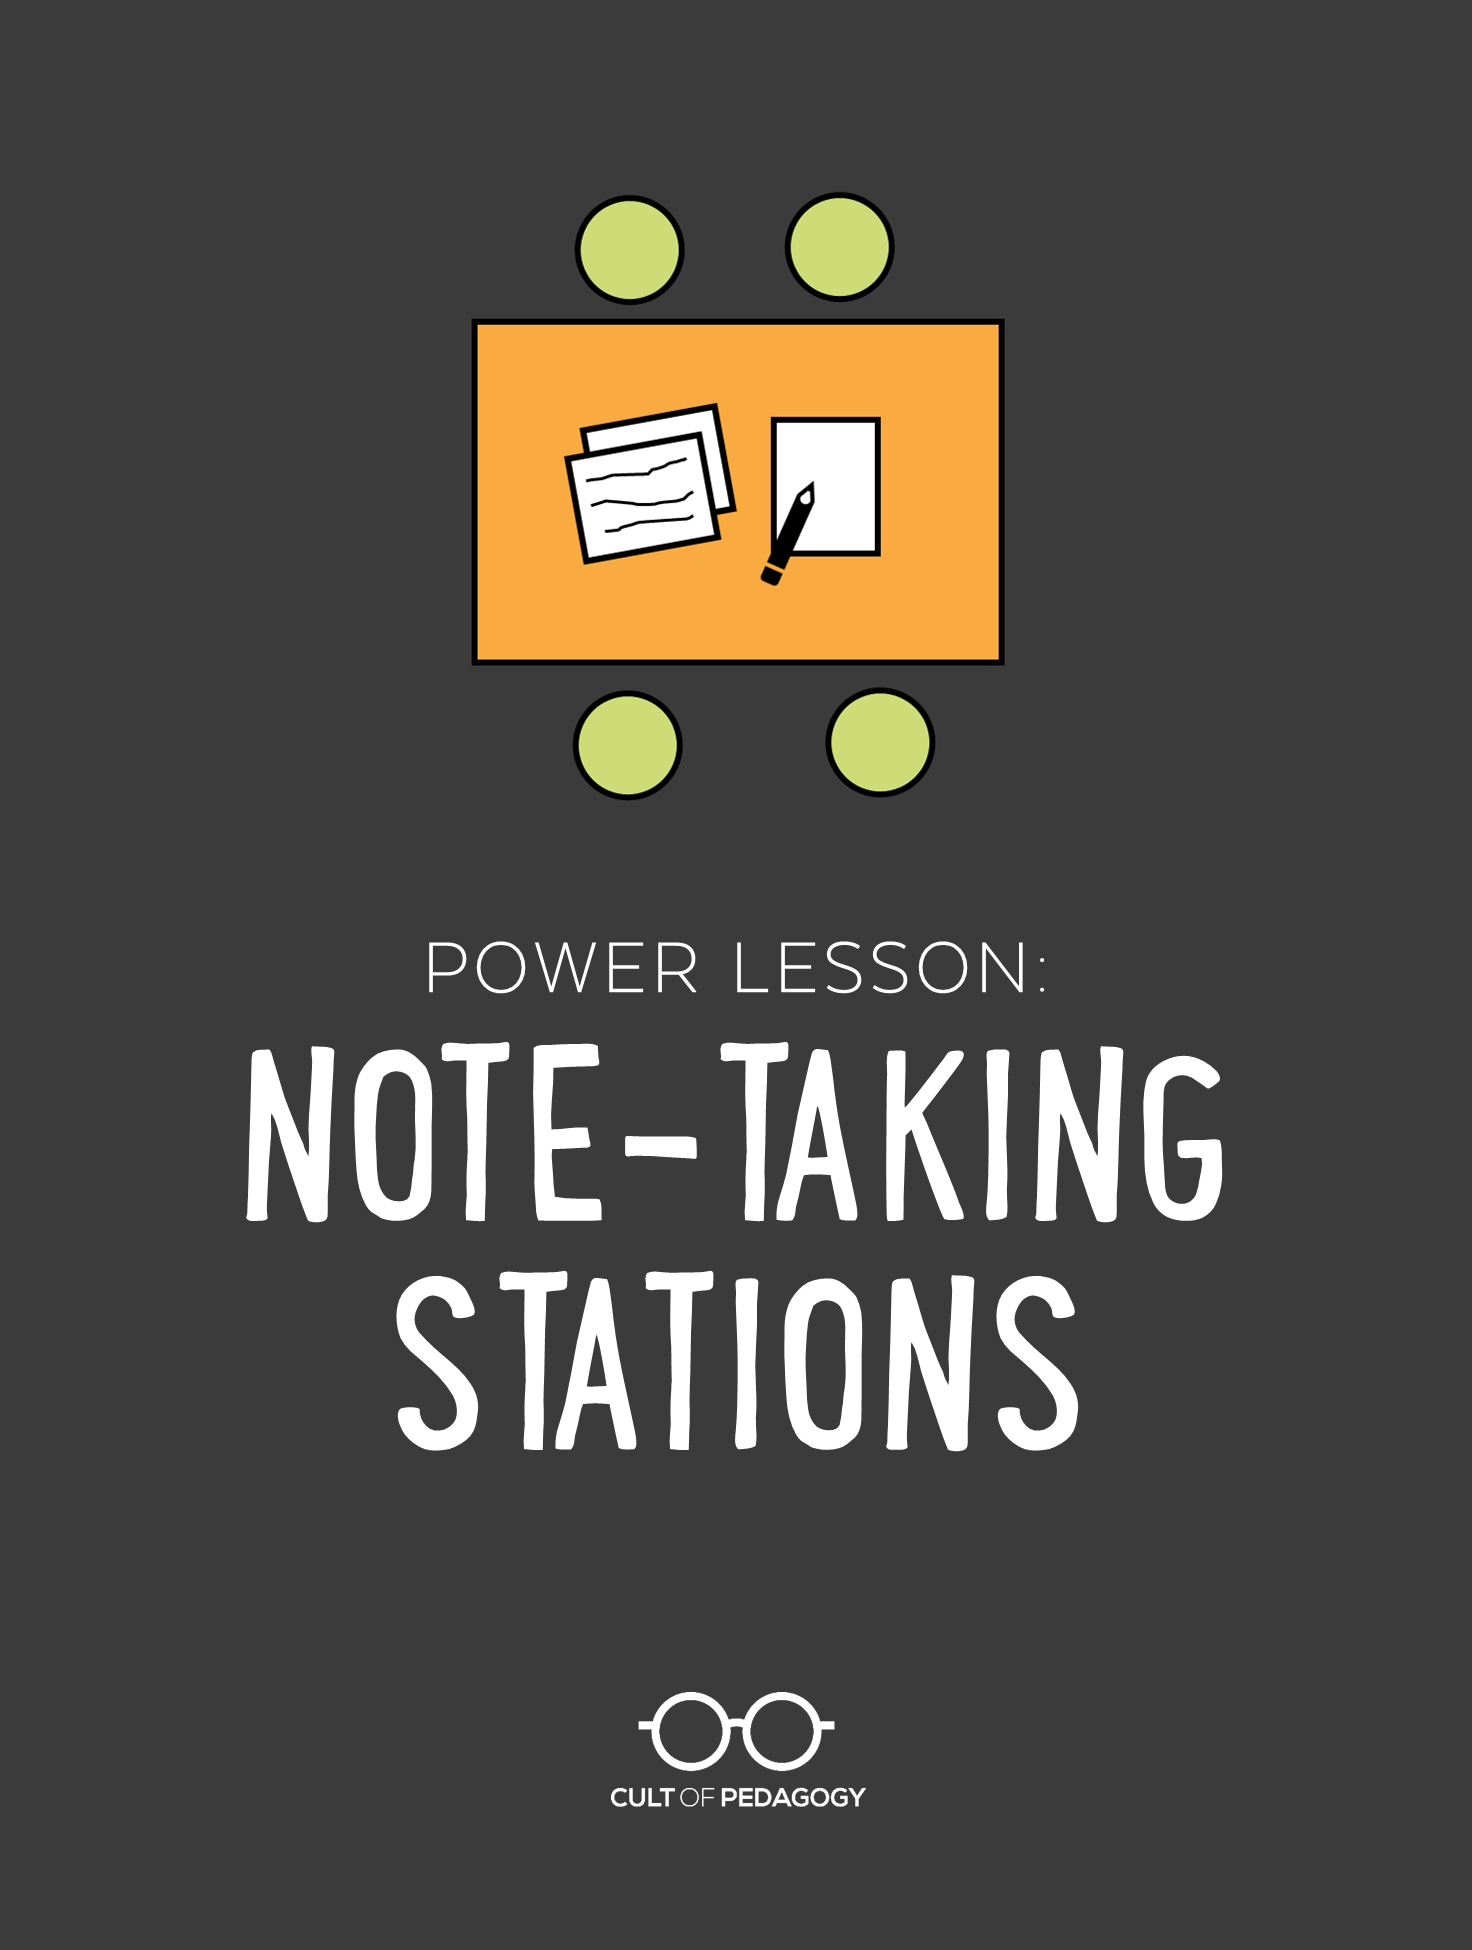 To take quality notes, students need to be taught how. This fantastic station-rotation lesson gets the job done, and it can be used with all kinds of other content as well. #CultofPedagogy #teachingstrategies #notetaking #stationrotation #studentstudyskills